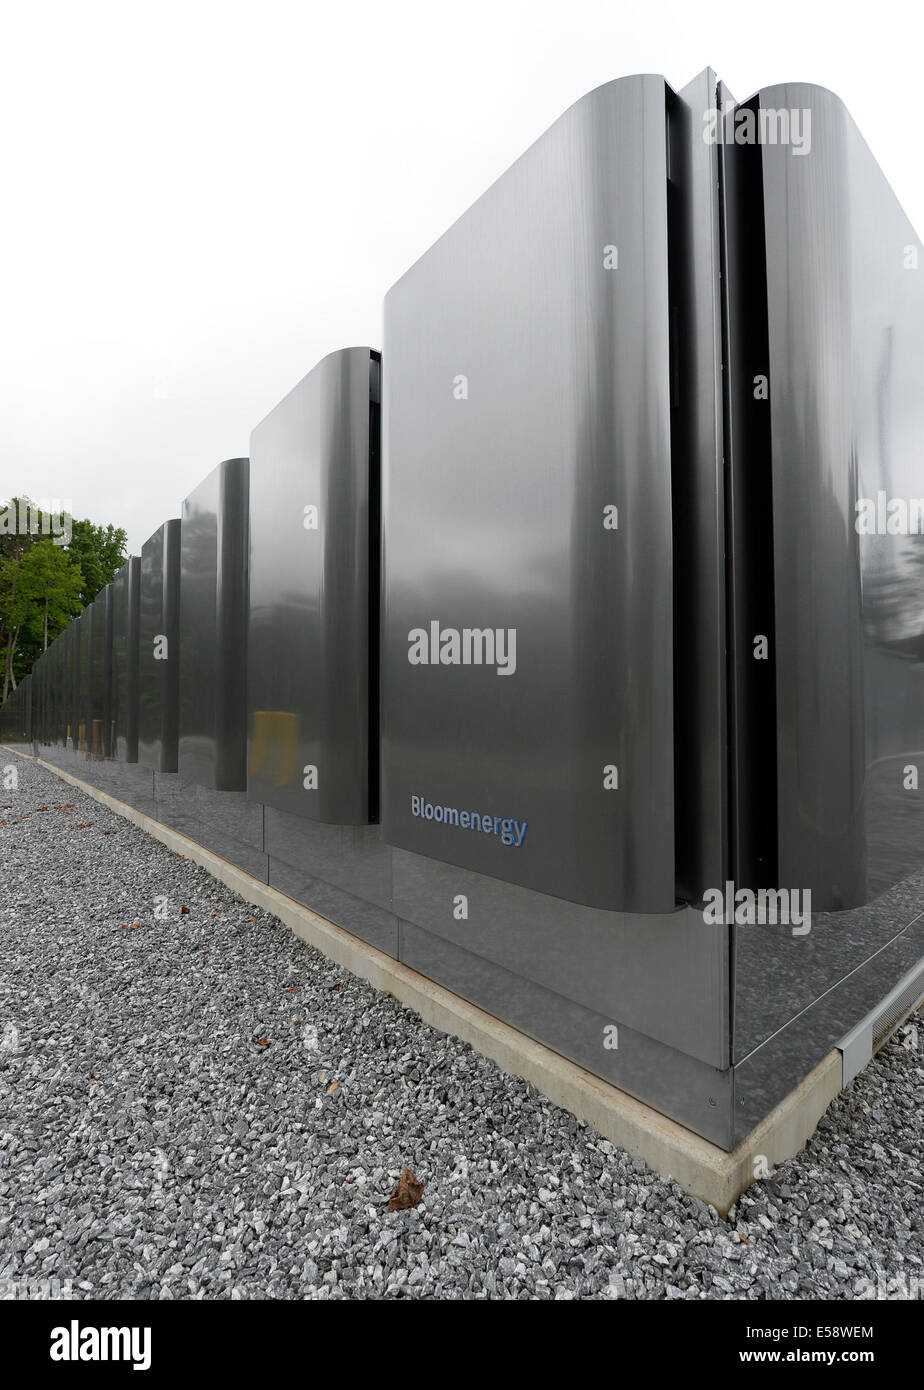 Maiden. 24th July, 2014. Photo taken on July 22, 2014 shows the methane gas fuel cells at Apple Data Center in Maiden, - Stock Image